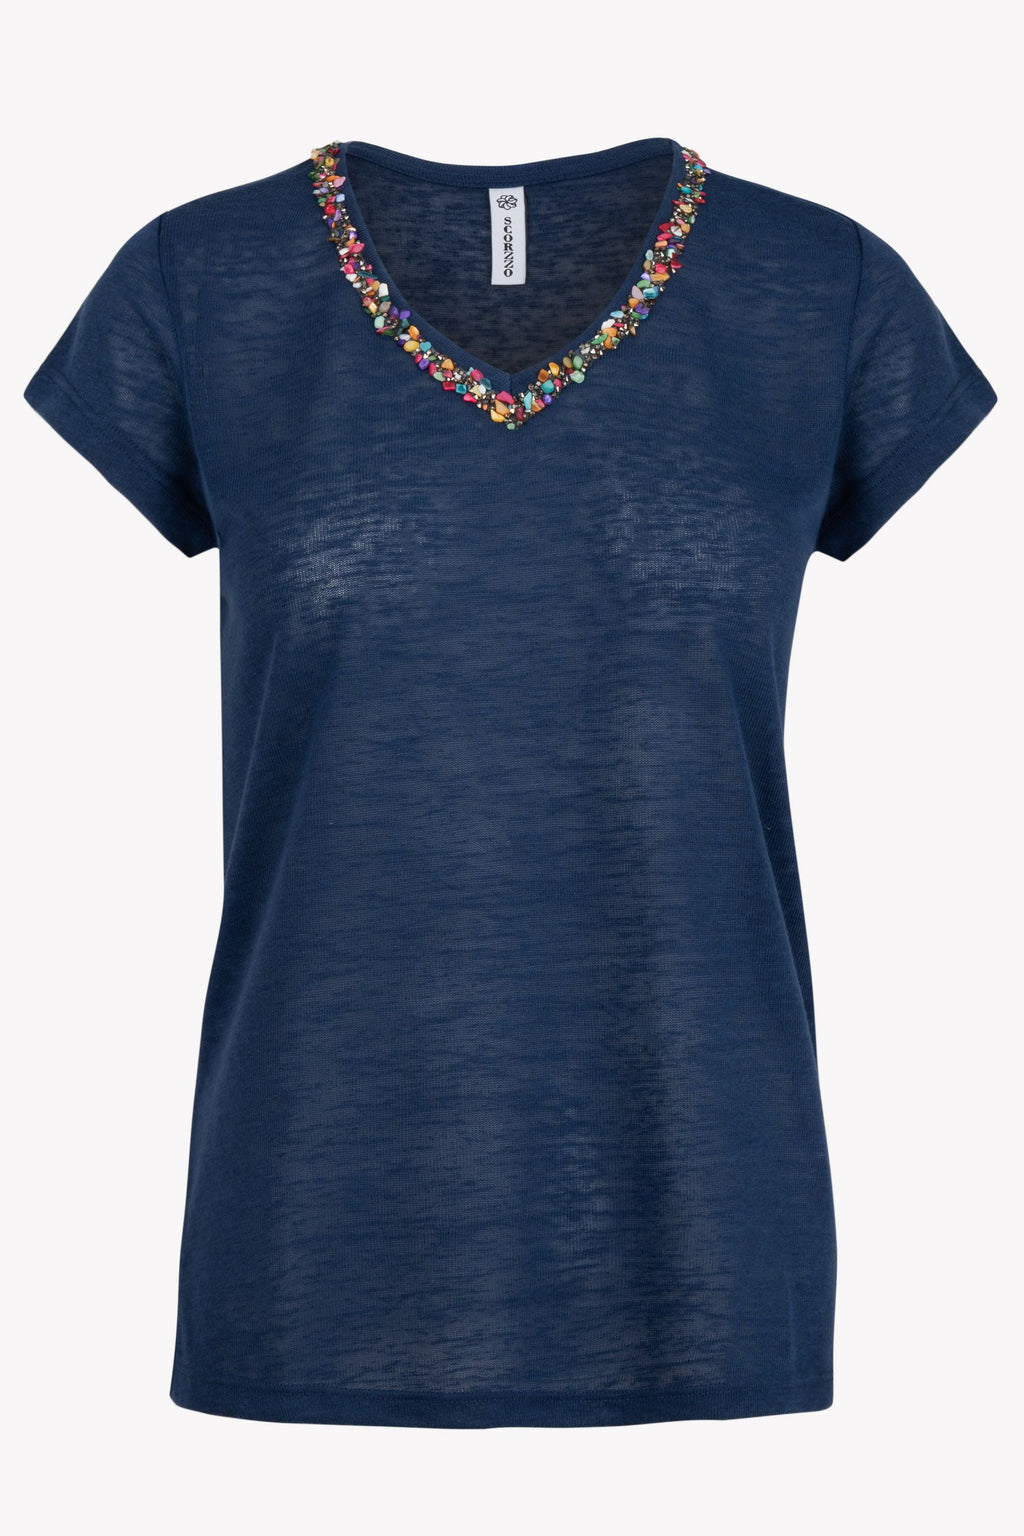 Linen Twinkle T-shirt by 'Scorzzo' in Navy